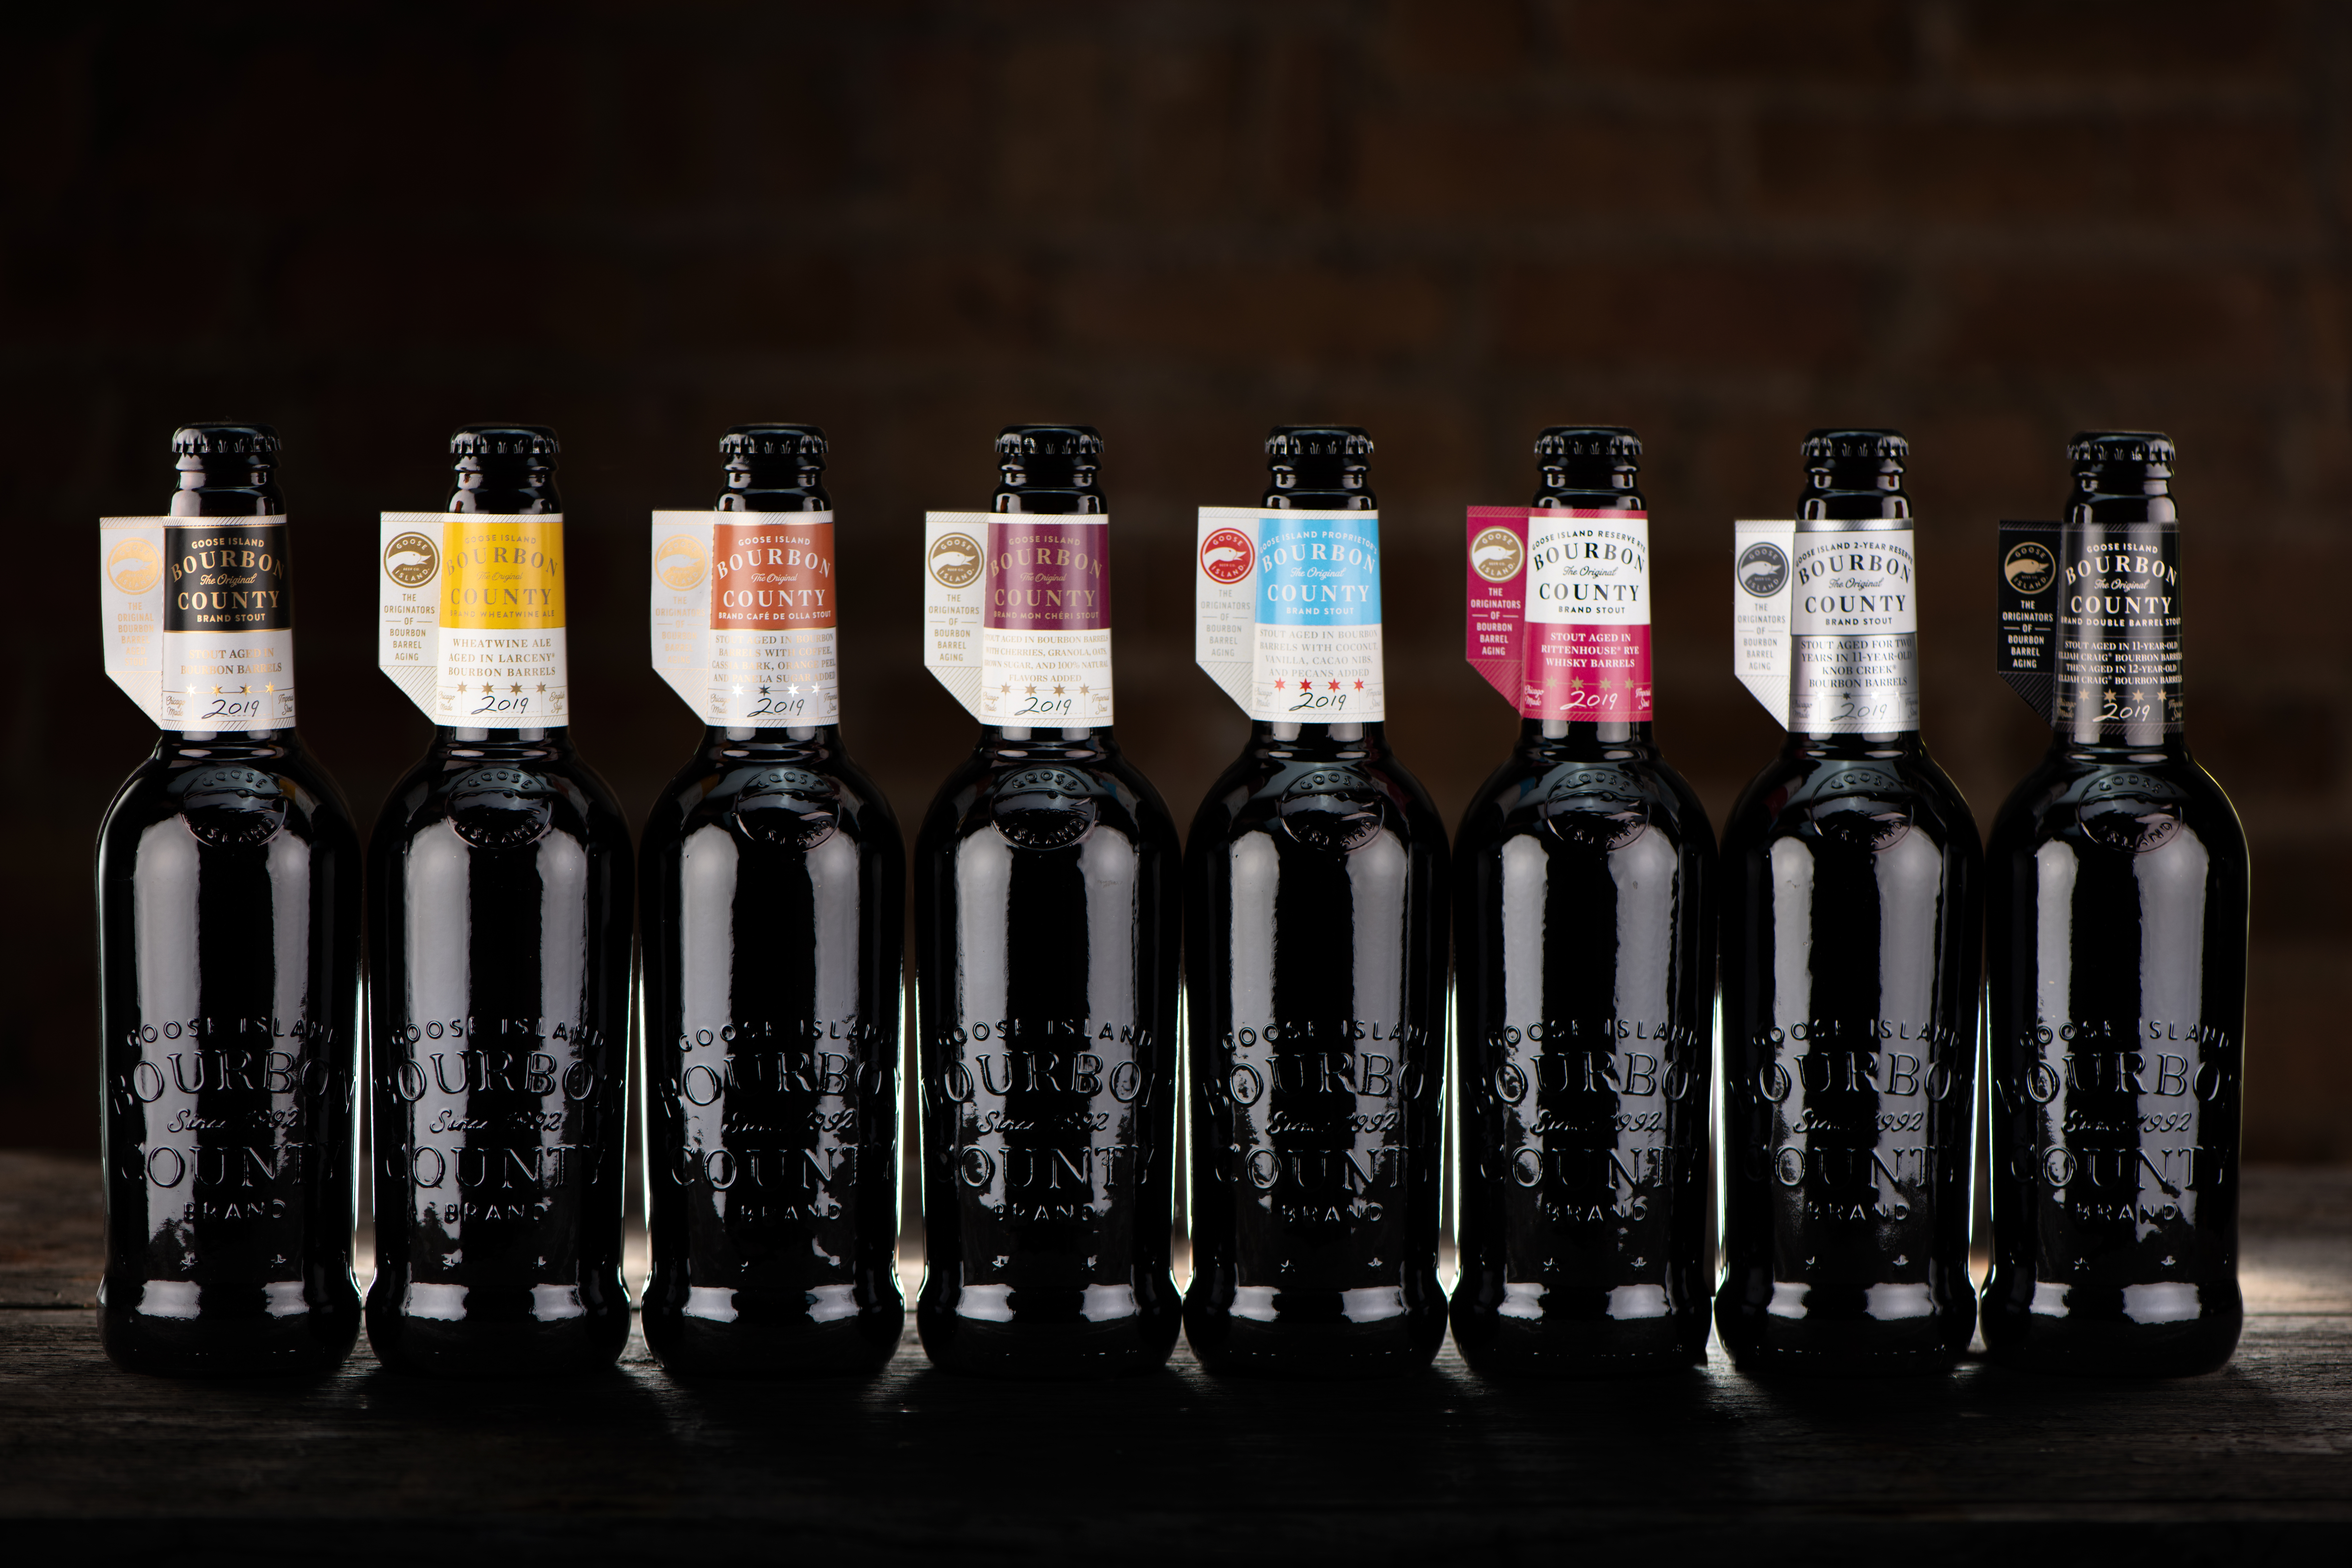 2019 Goose Island Bourbon County Stout Full Lineup